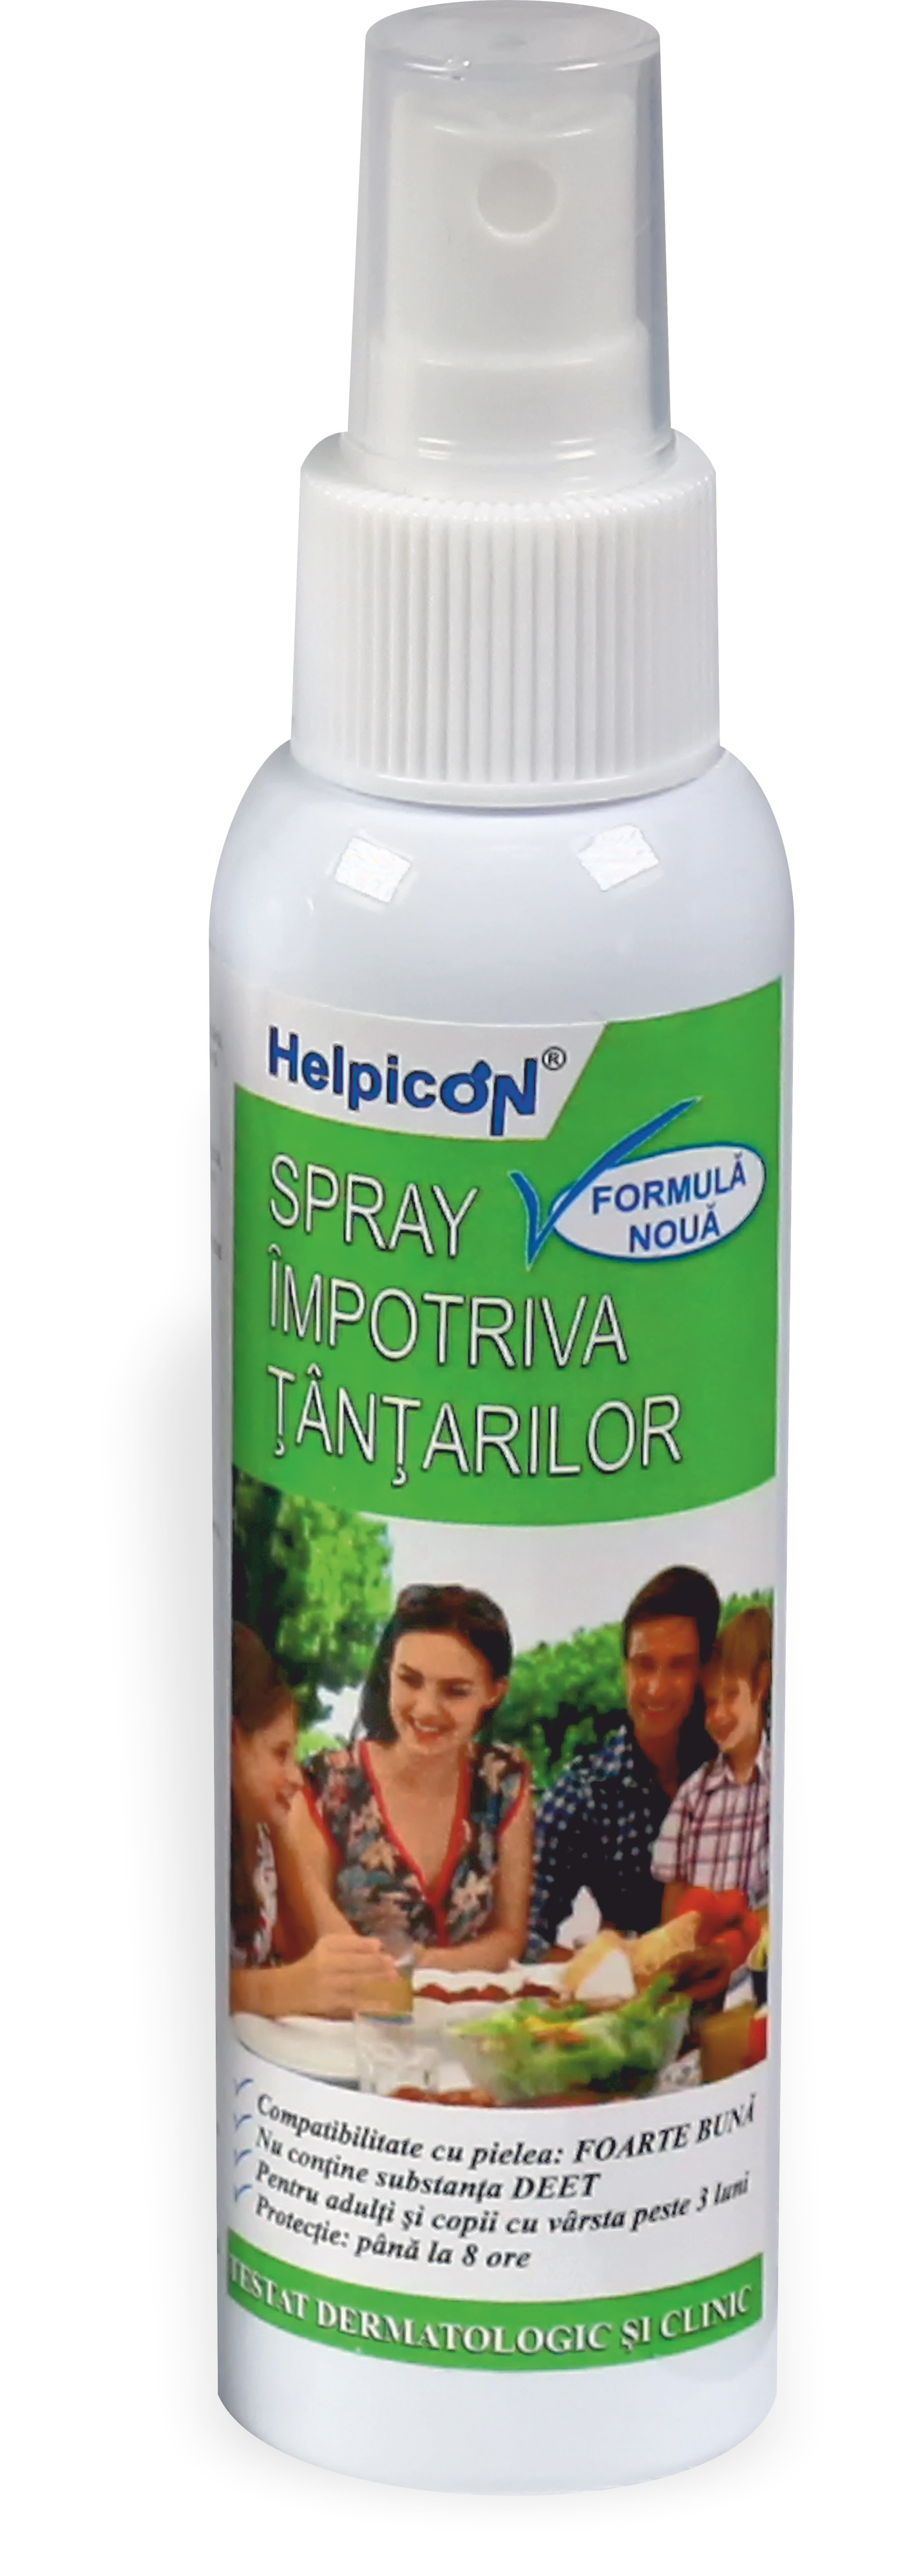 tantari Helpicon 2018